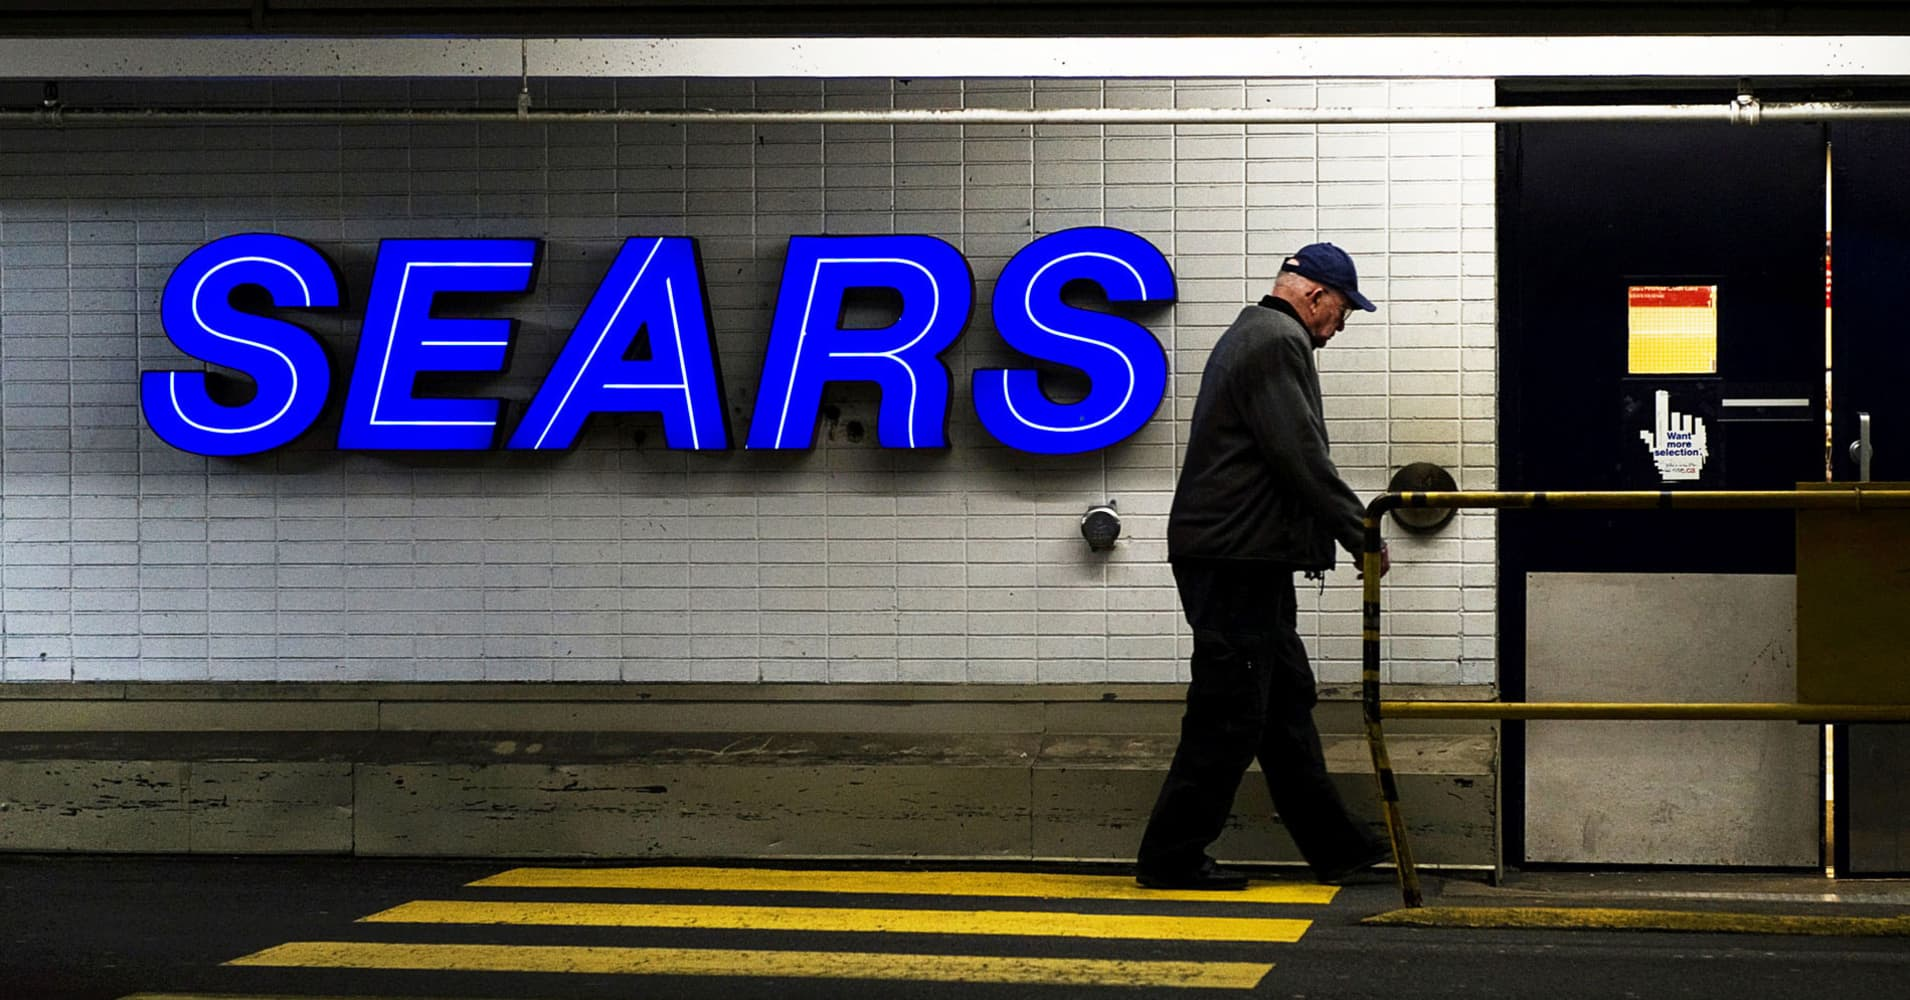 Sears drops a bombshell on investors, then tells them nothing's changed